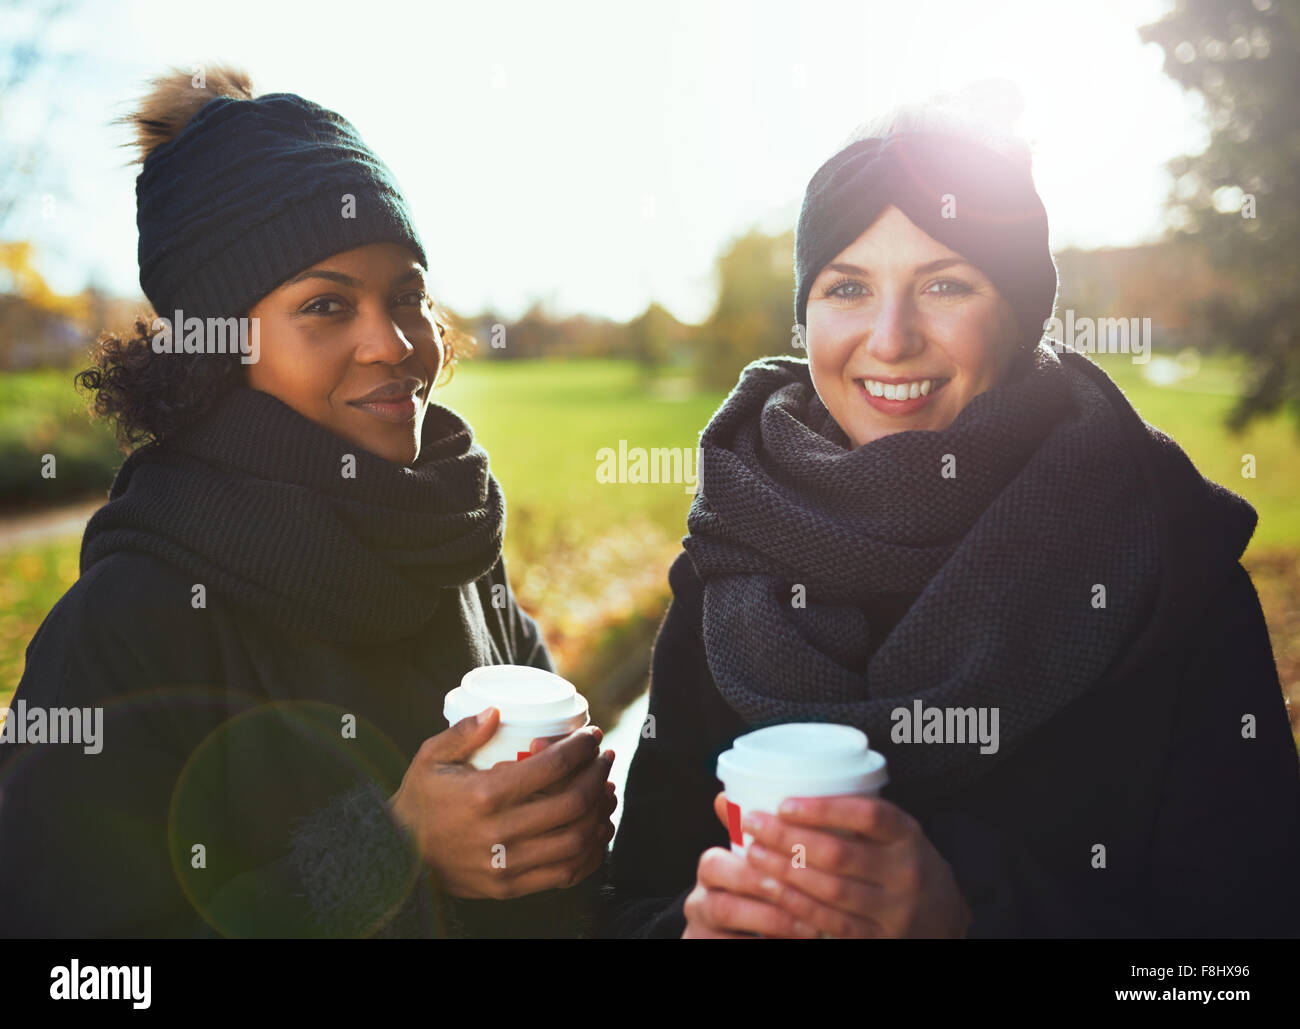 Two young women looking at camera, smiling while holding coffee to go against of autumnal park - Stock Image